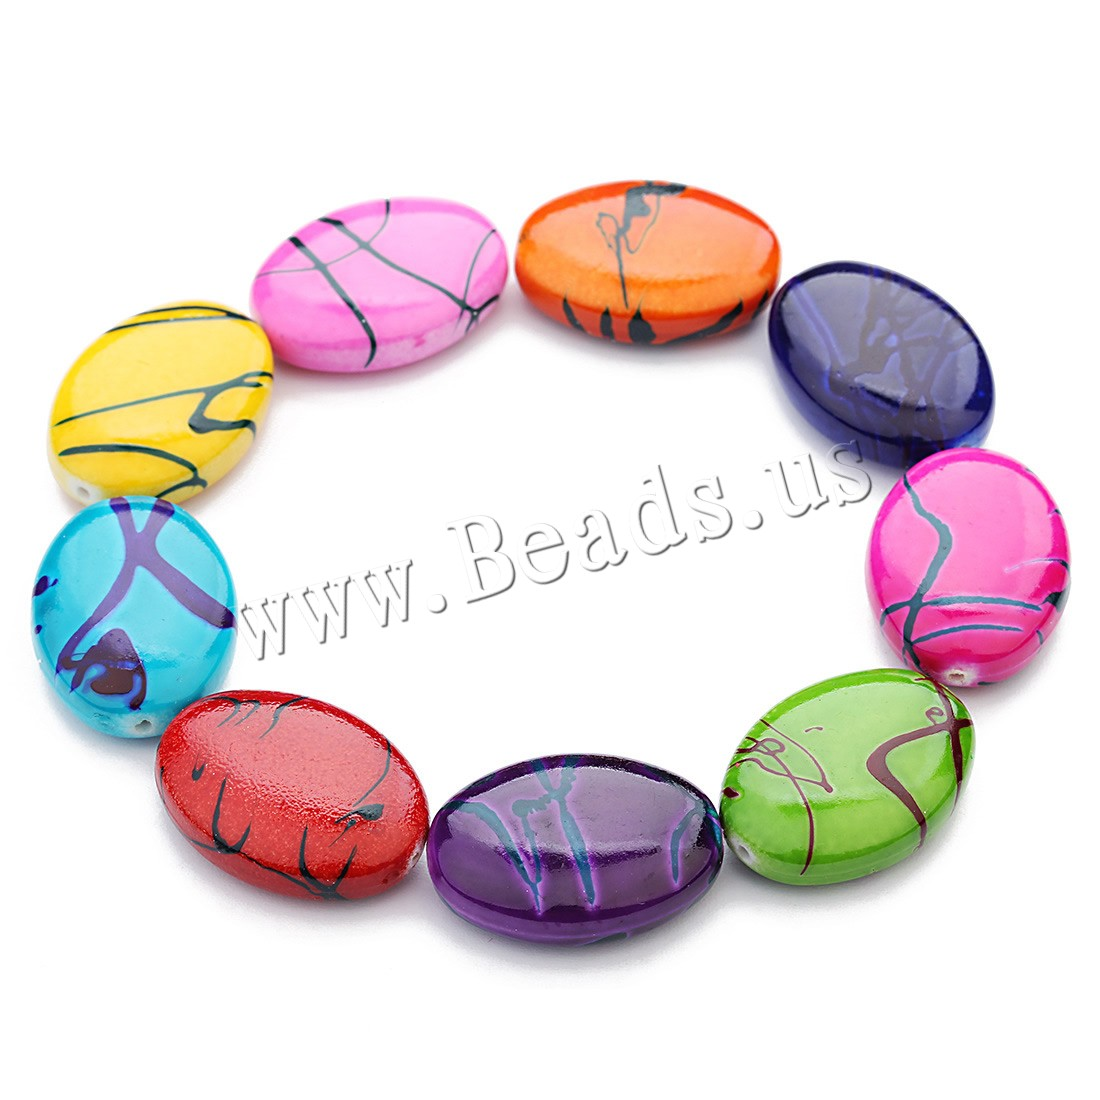 Resin Jewelry Beads Flat Oval mixed colors 24x18x7.5mm Hole:Approx 1mm 30PCs/Bag Sold Bag